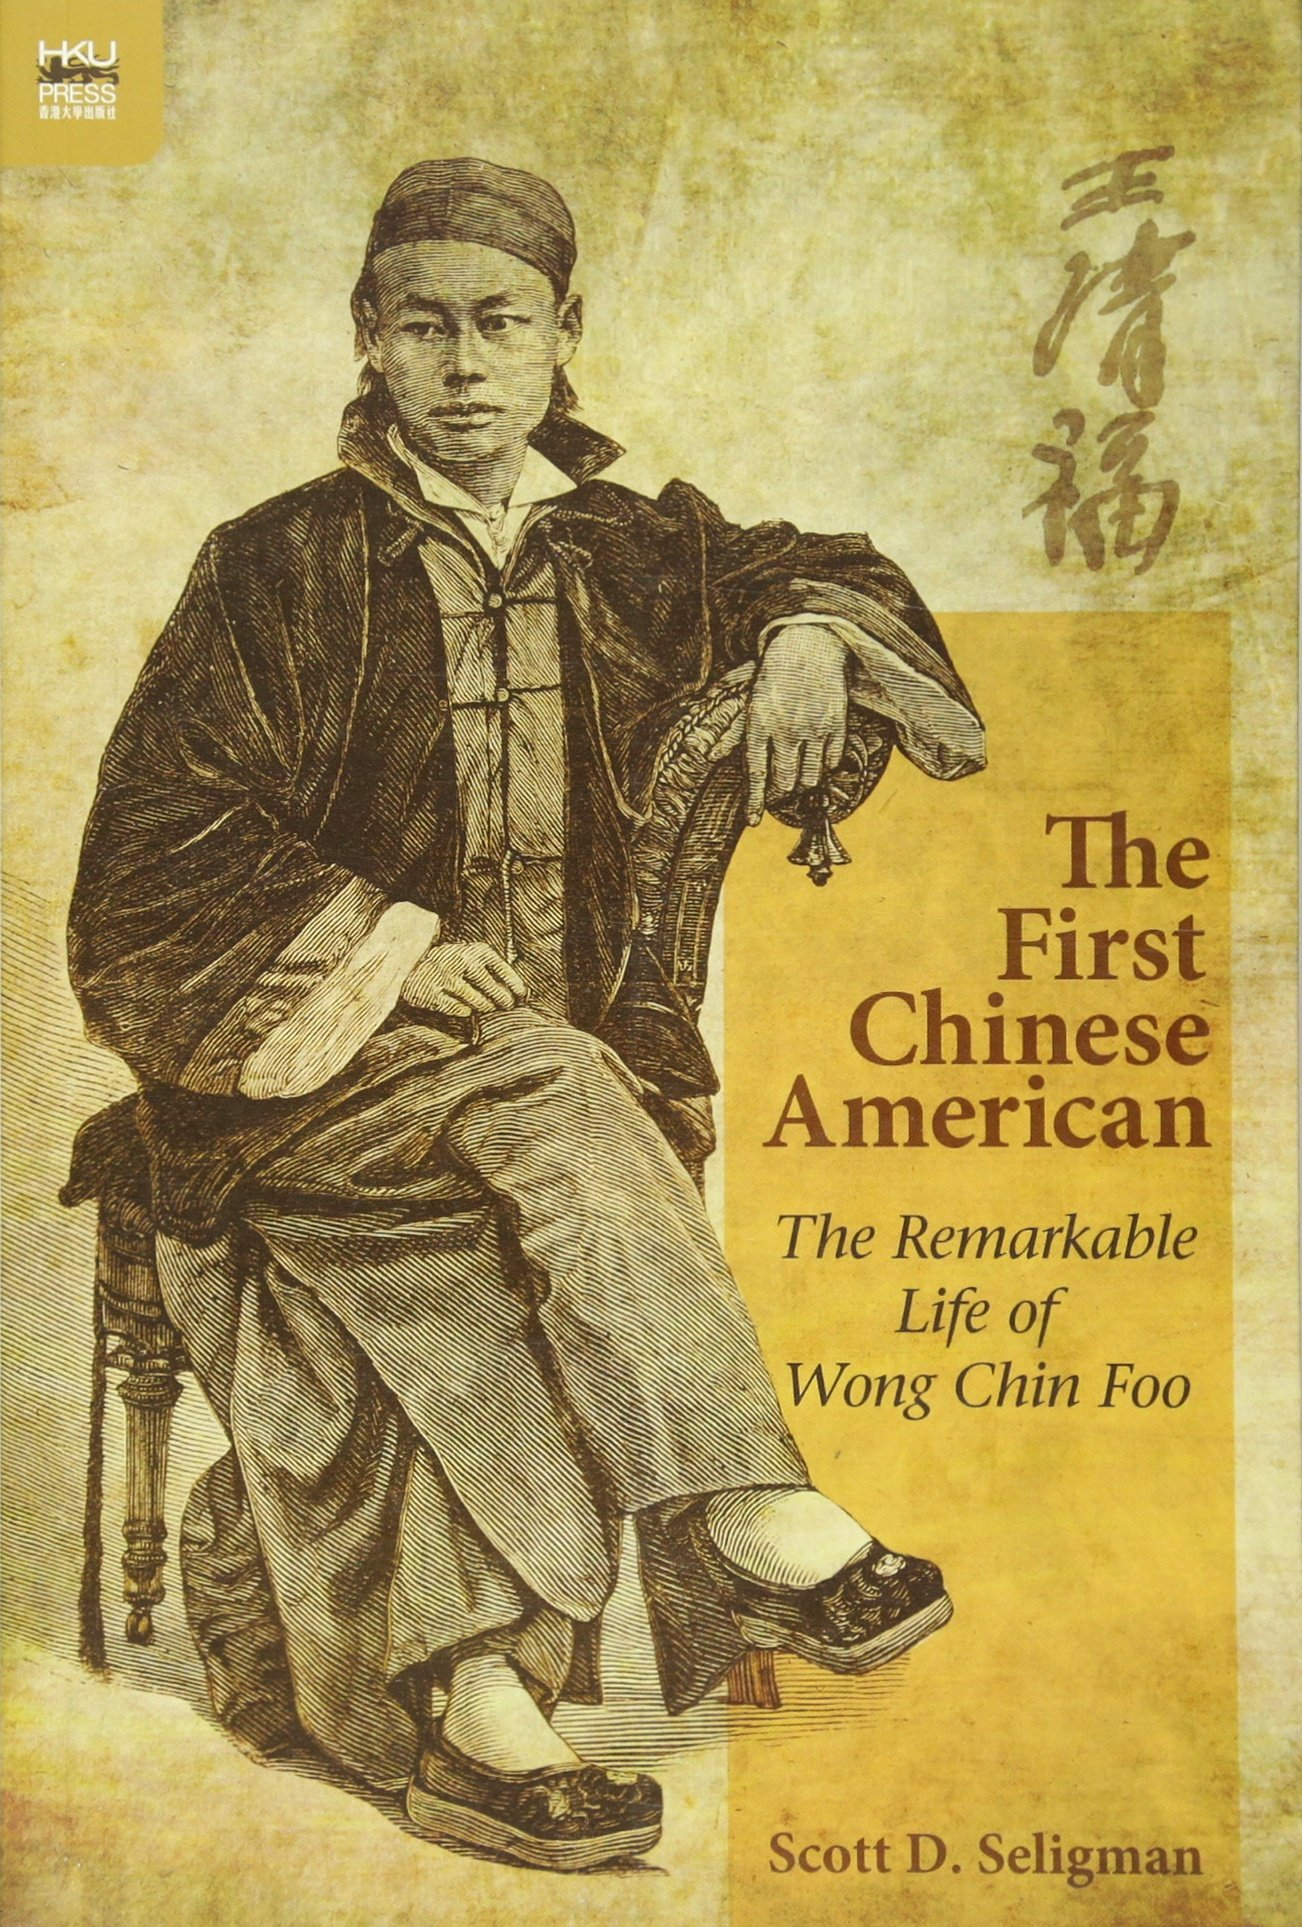 Amazon.com: The First Chinese American: The Remarkable Life of Wong ...